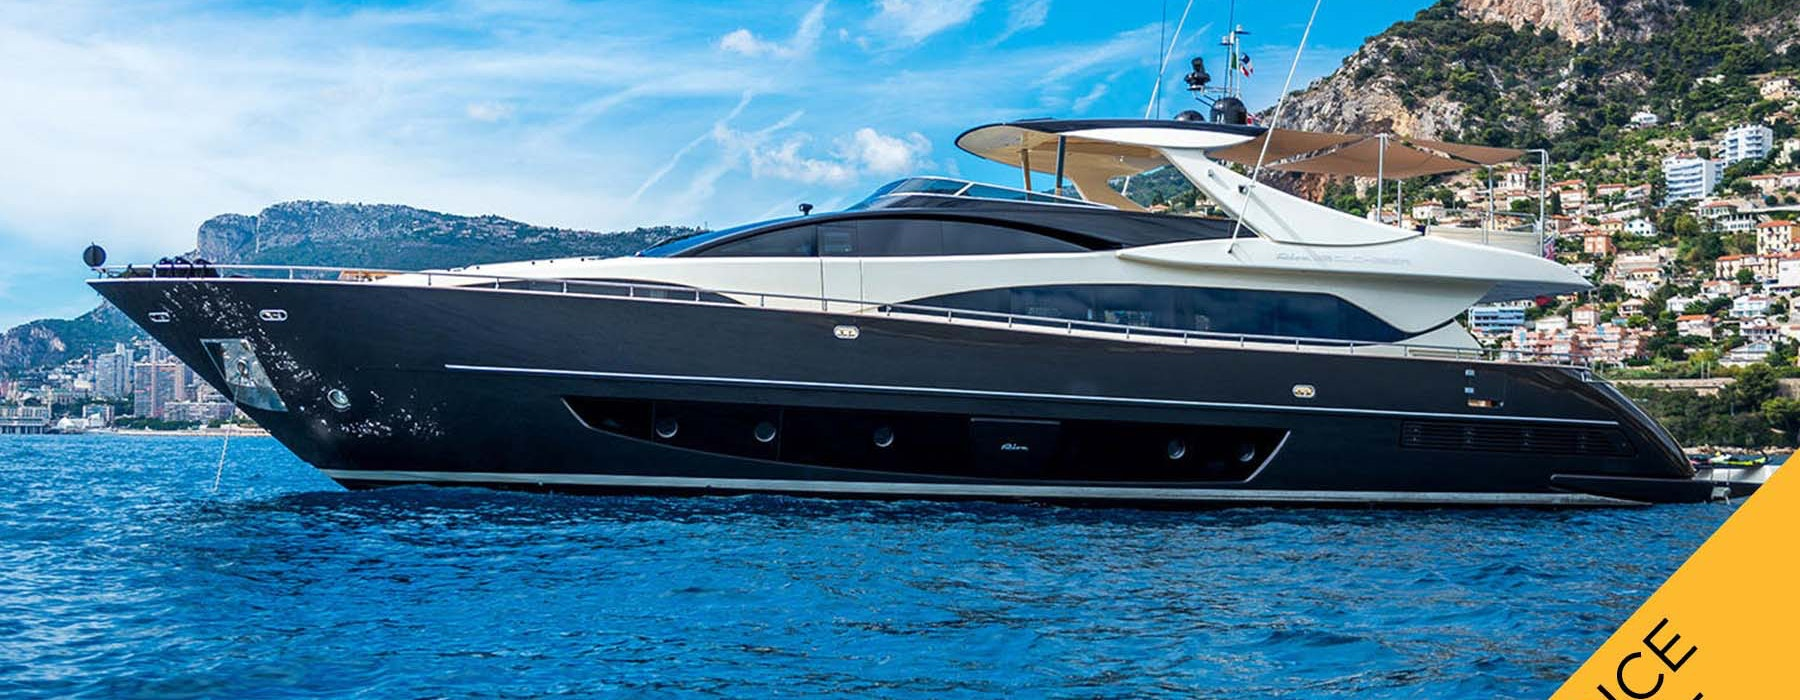 Luxury yacht RIVA 92 Eva Sofia for sale Price Reduced